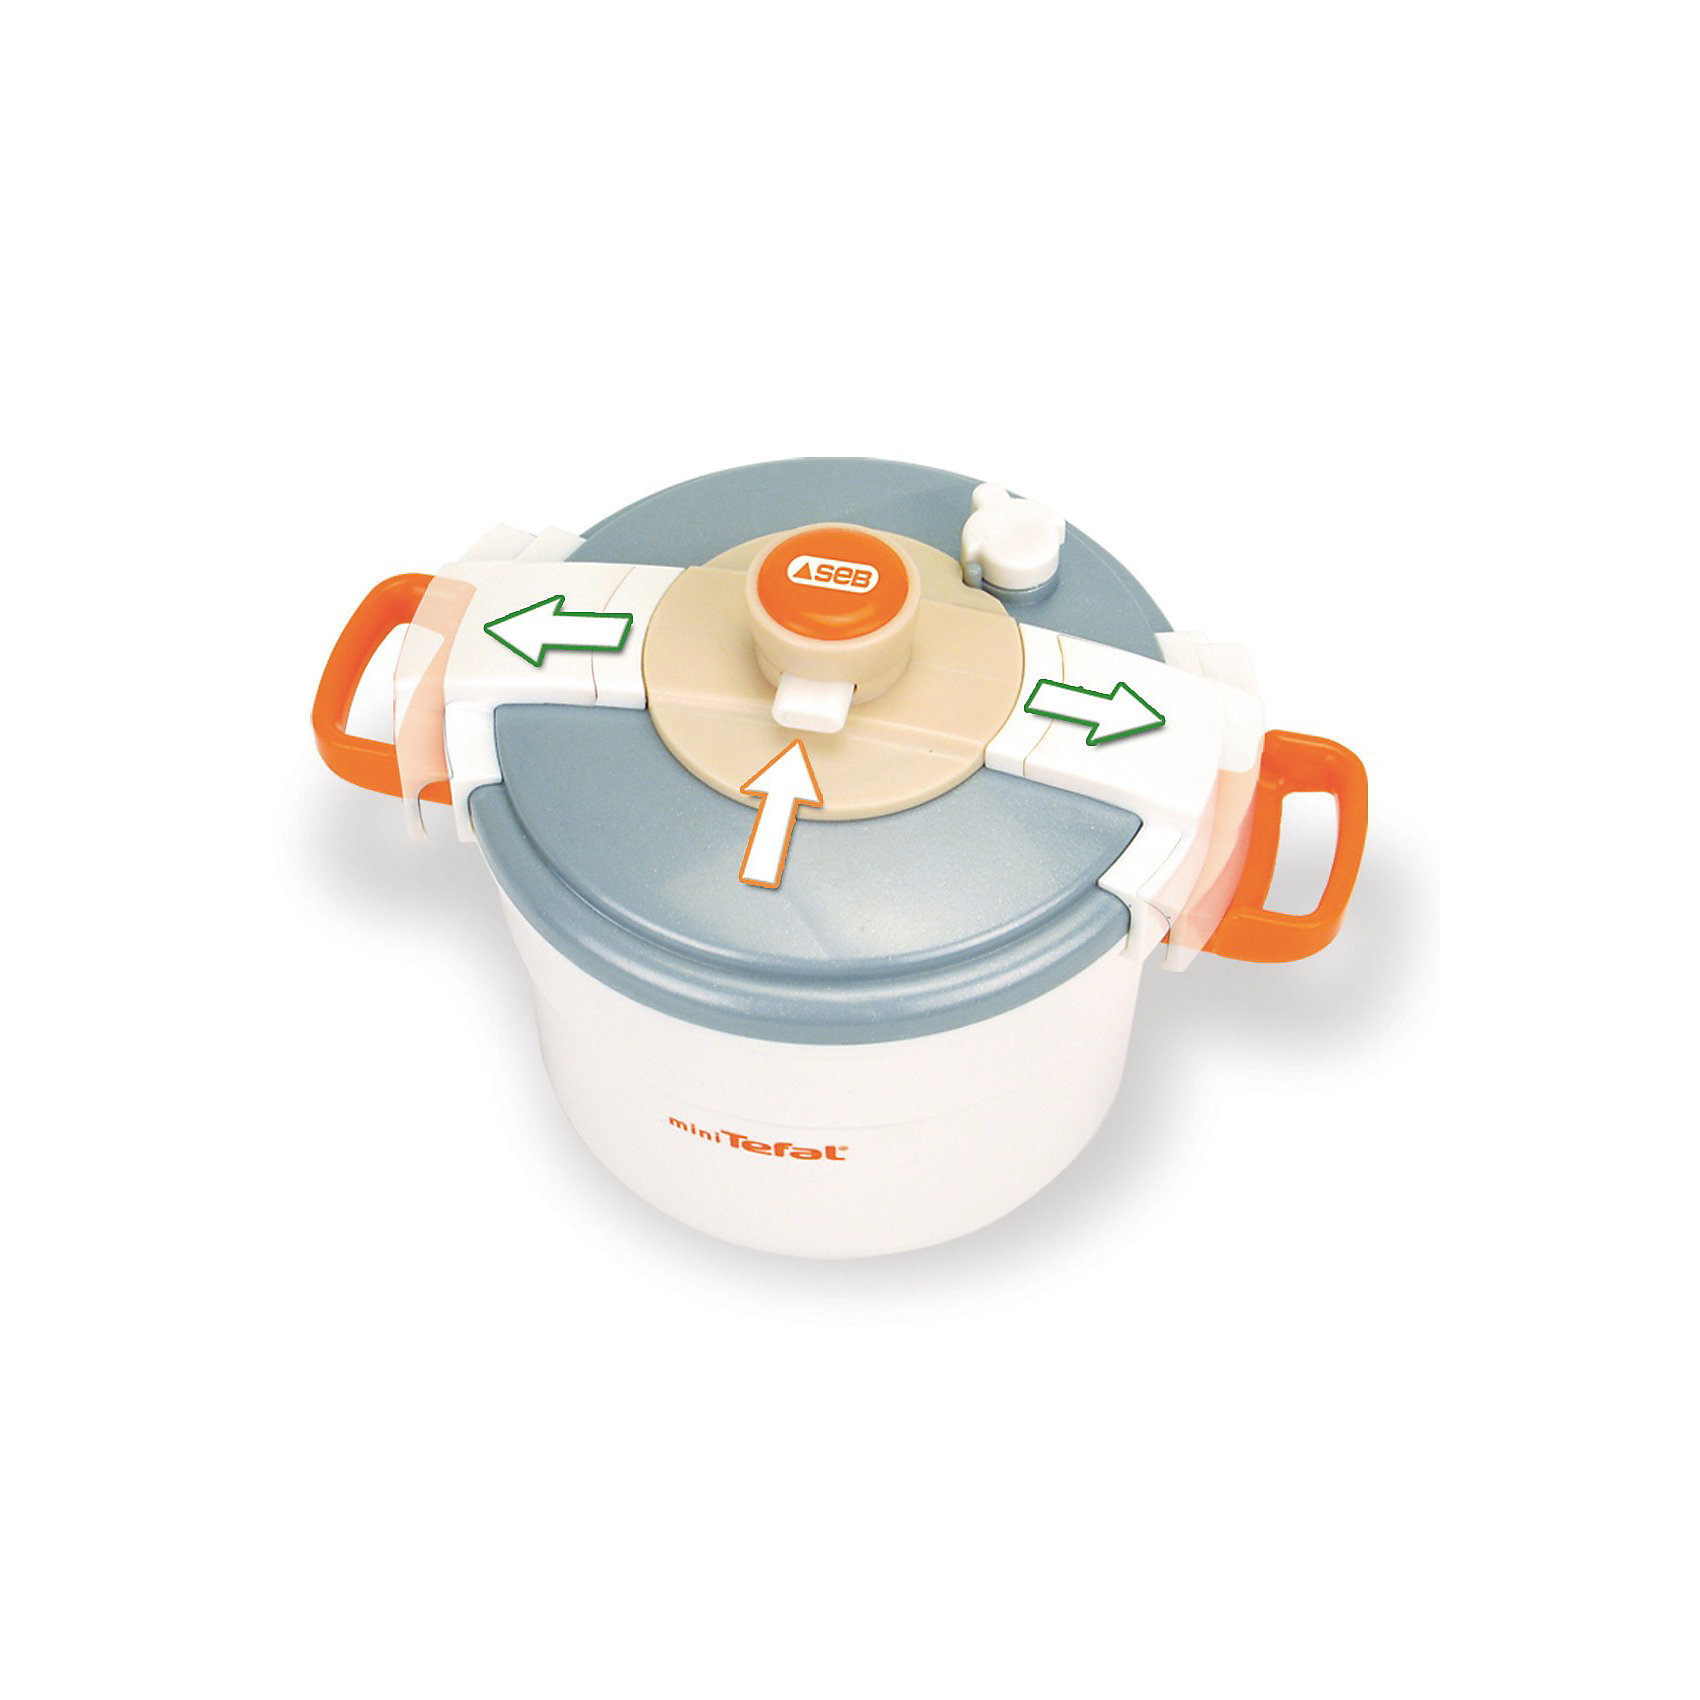 Smoby Smoby Скороварка Tefal smoby игрушка блендер tefal smoby